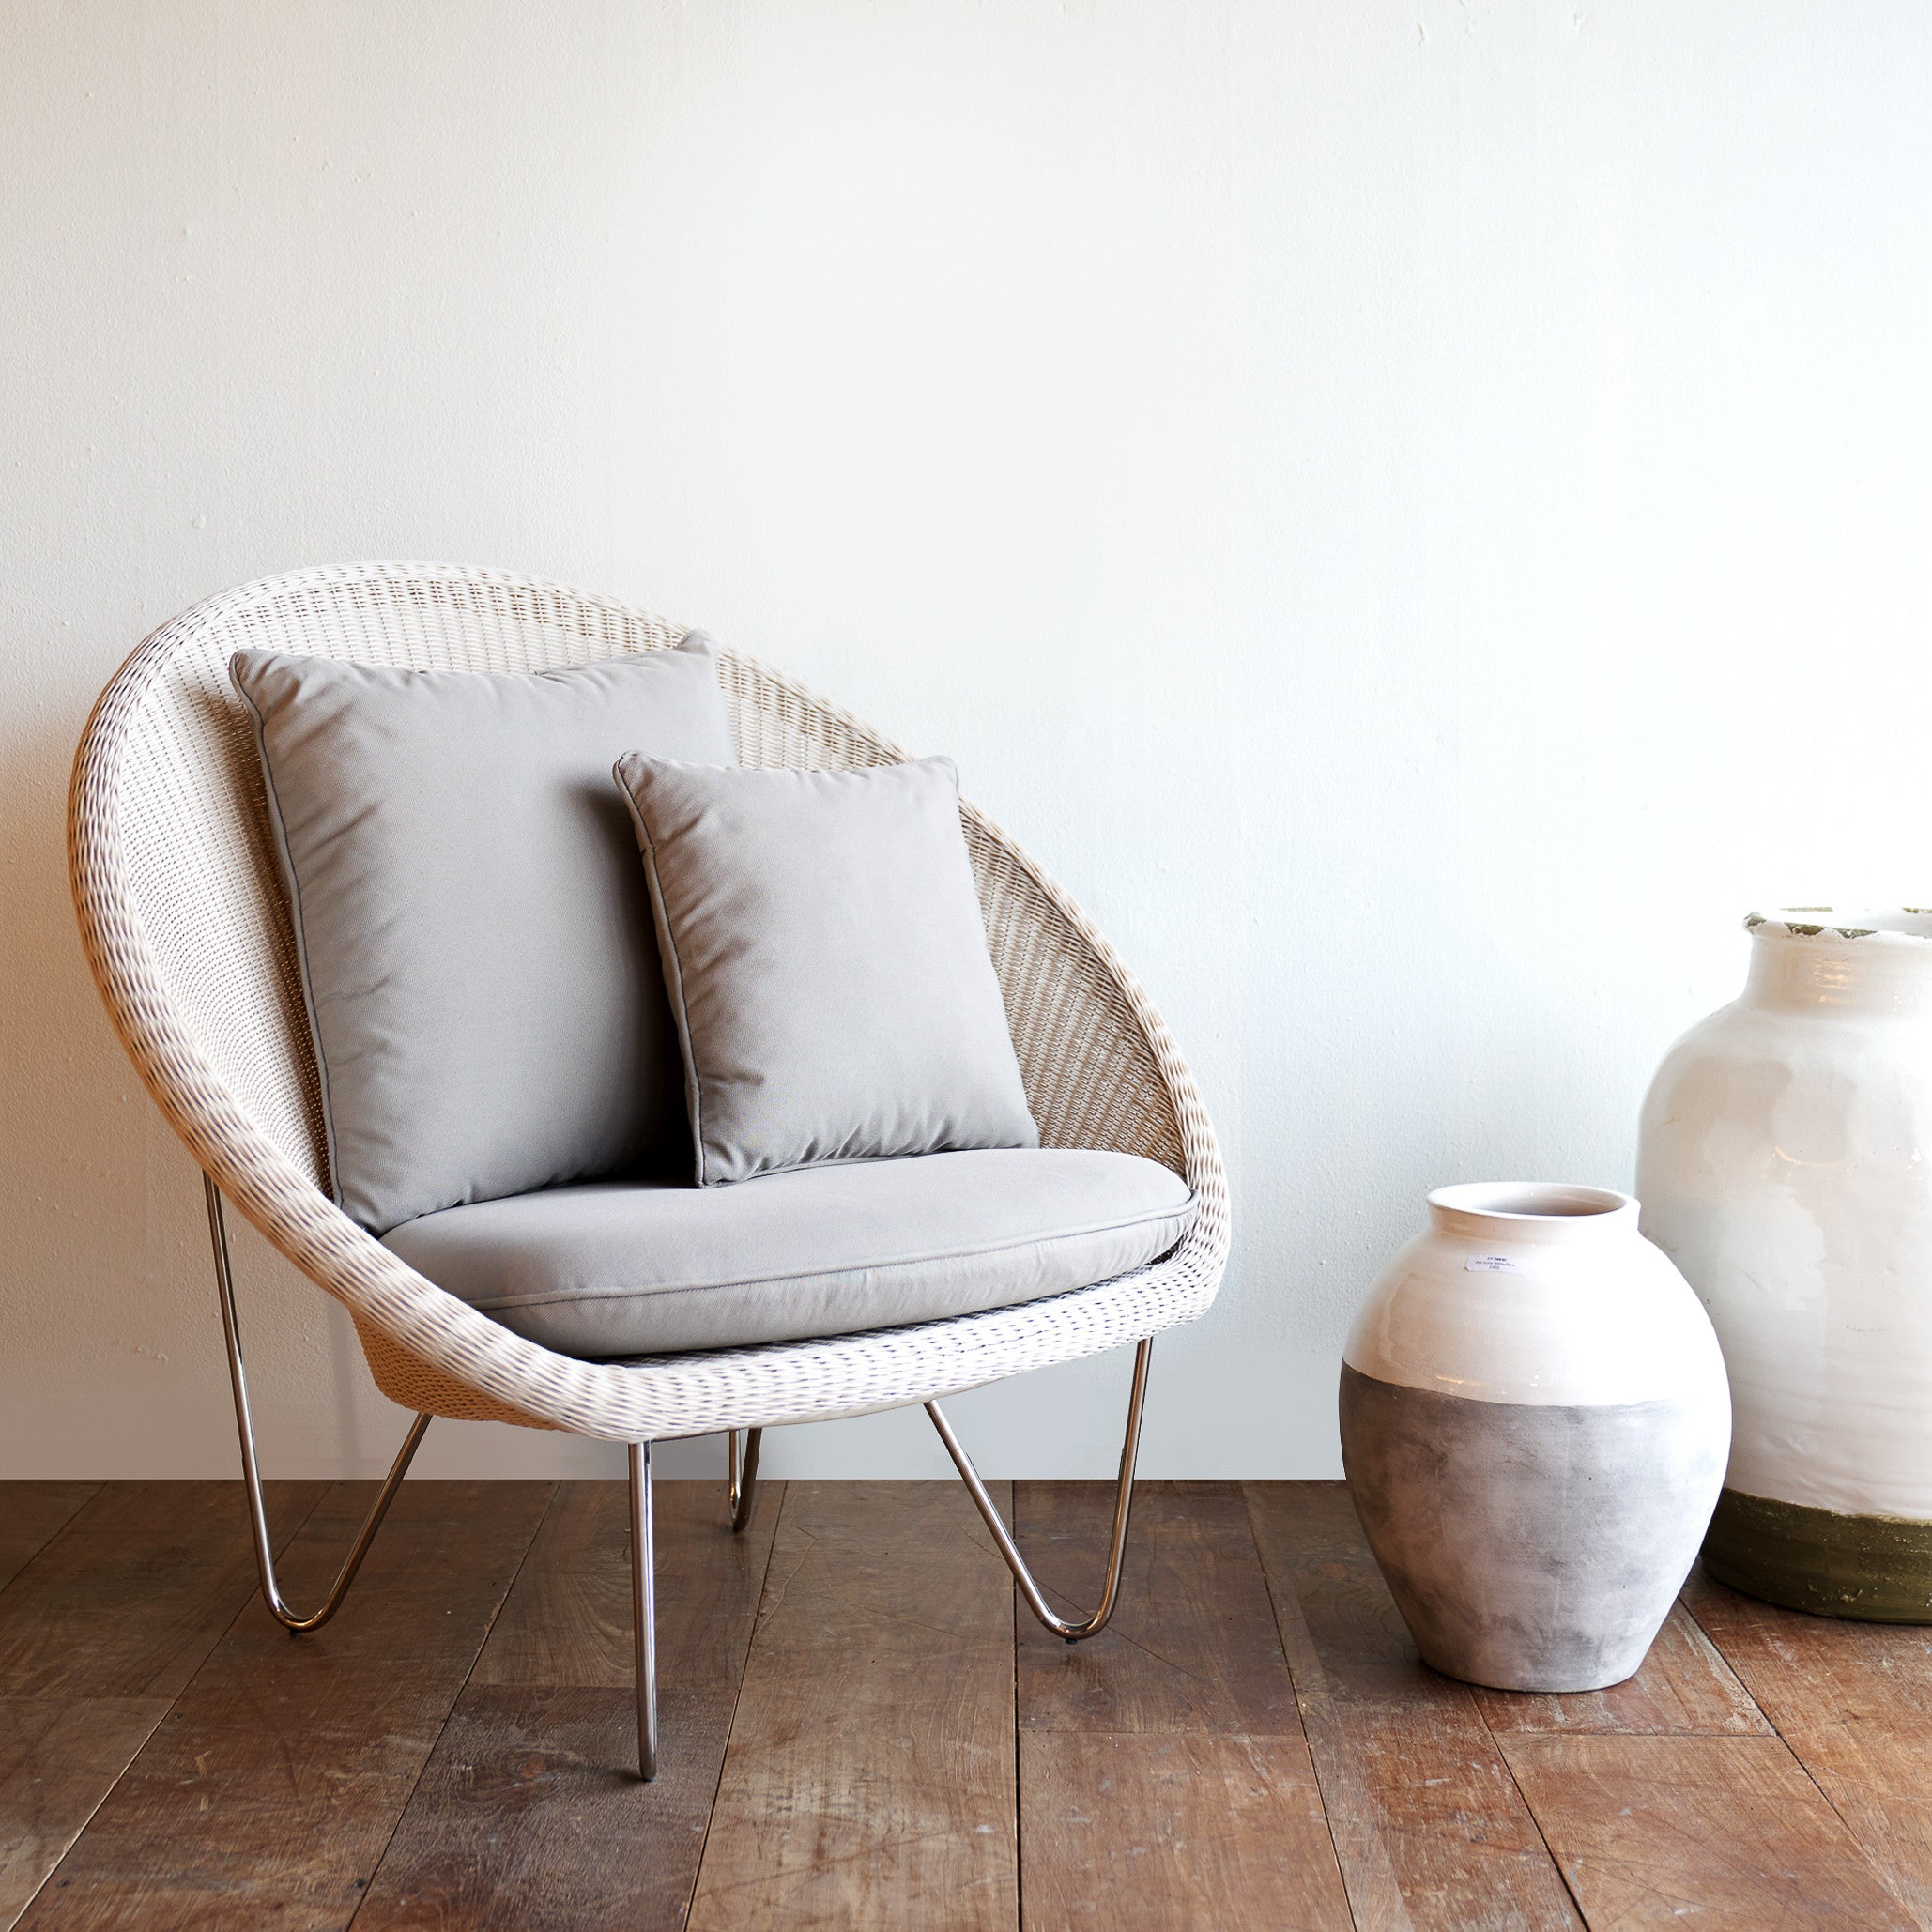 Outdoor Cocoon Chair | Gipsy - Old Lace